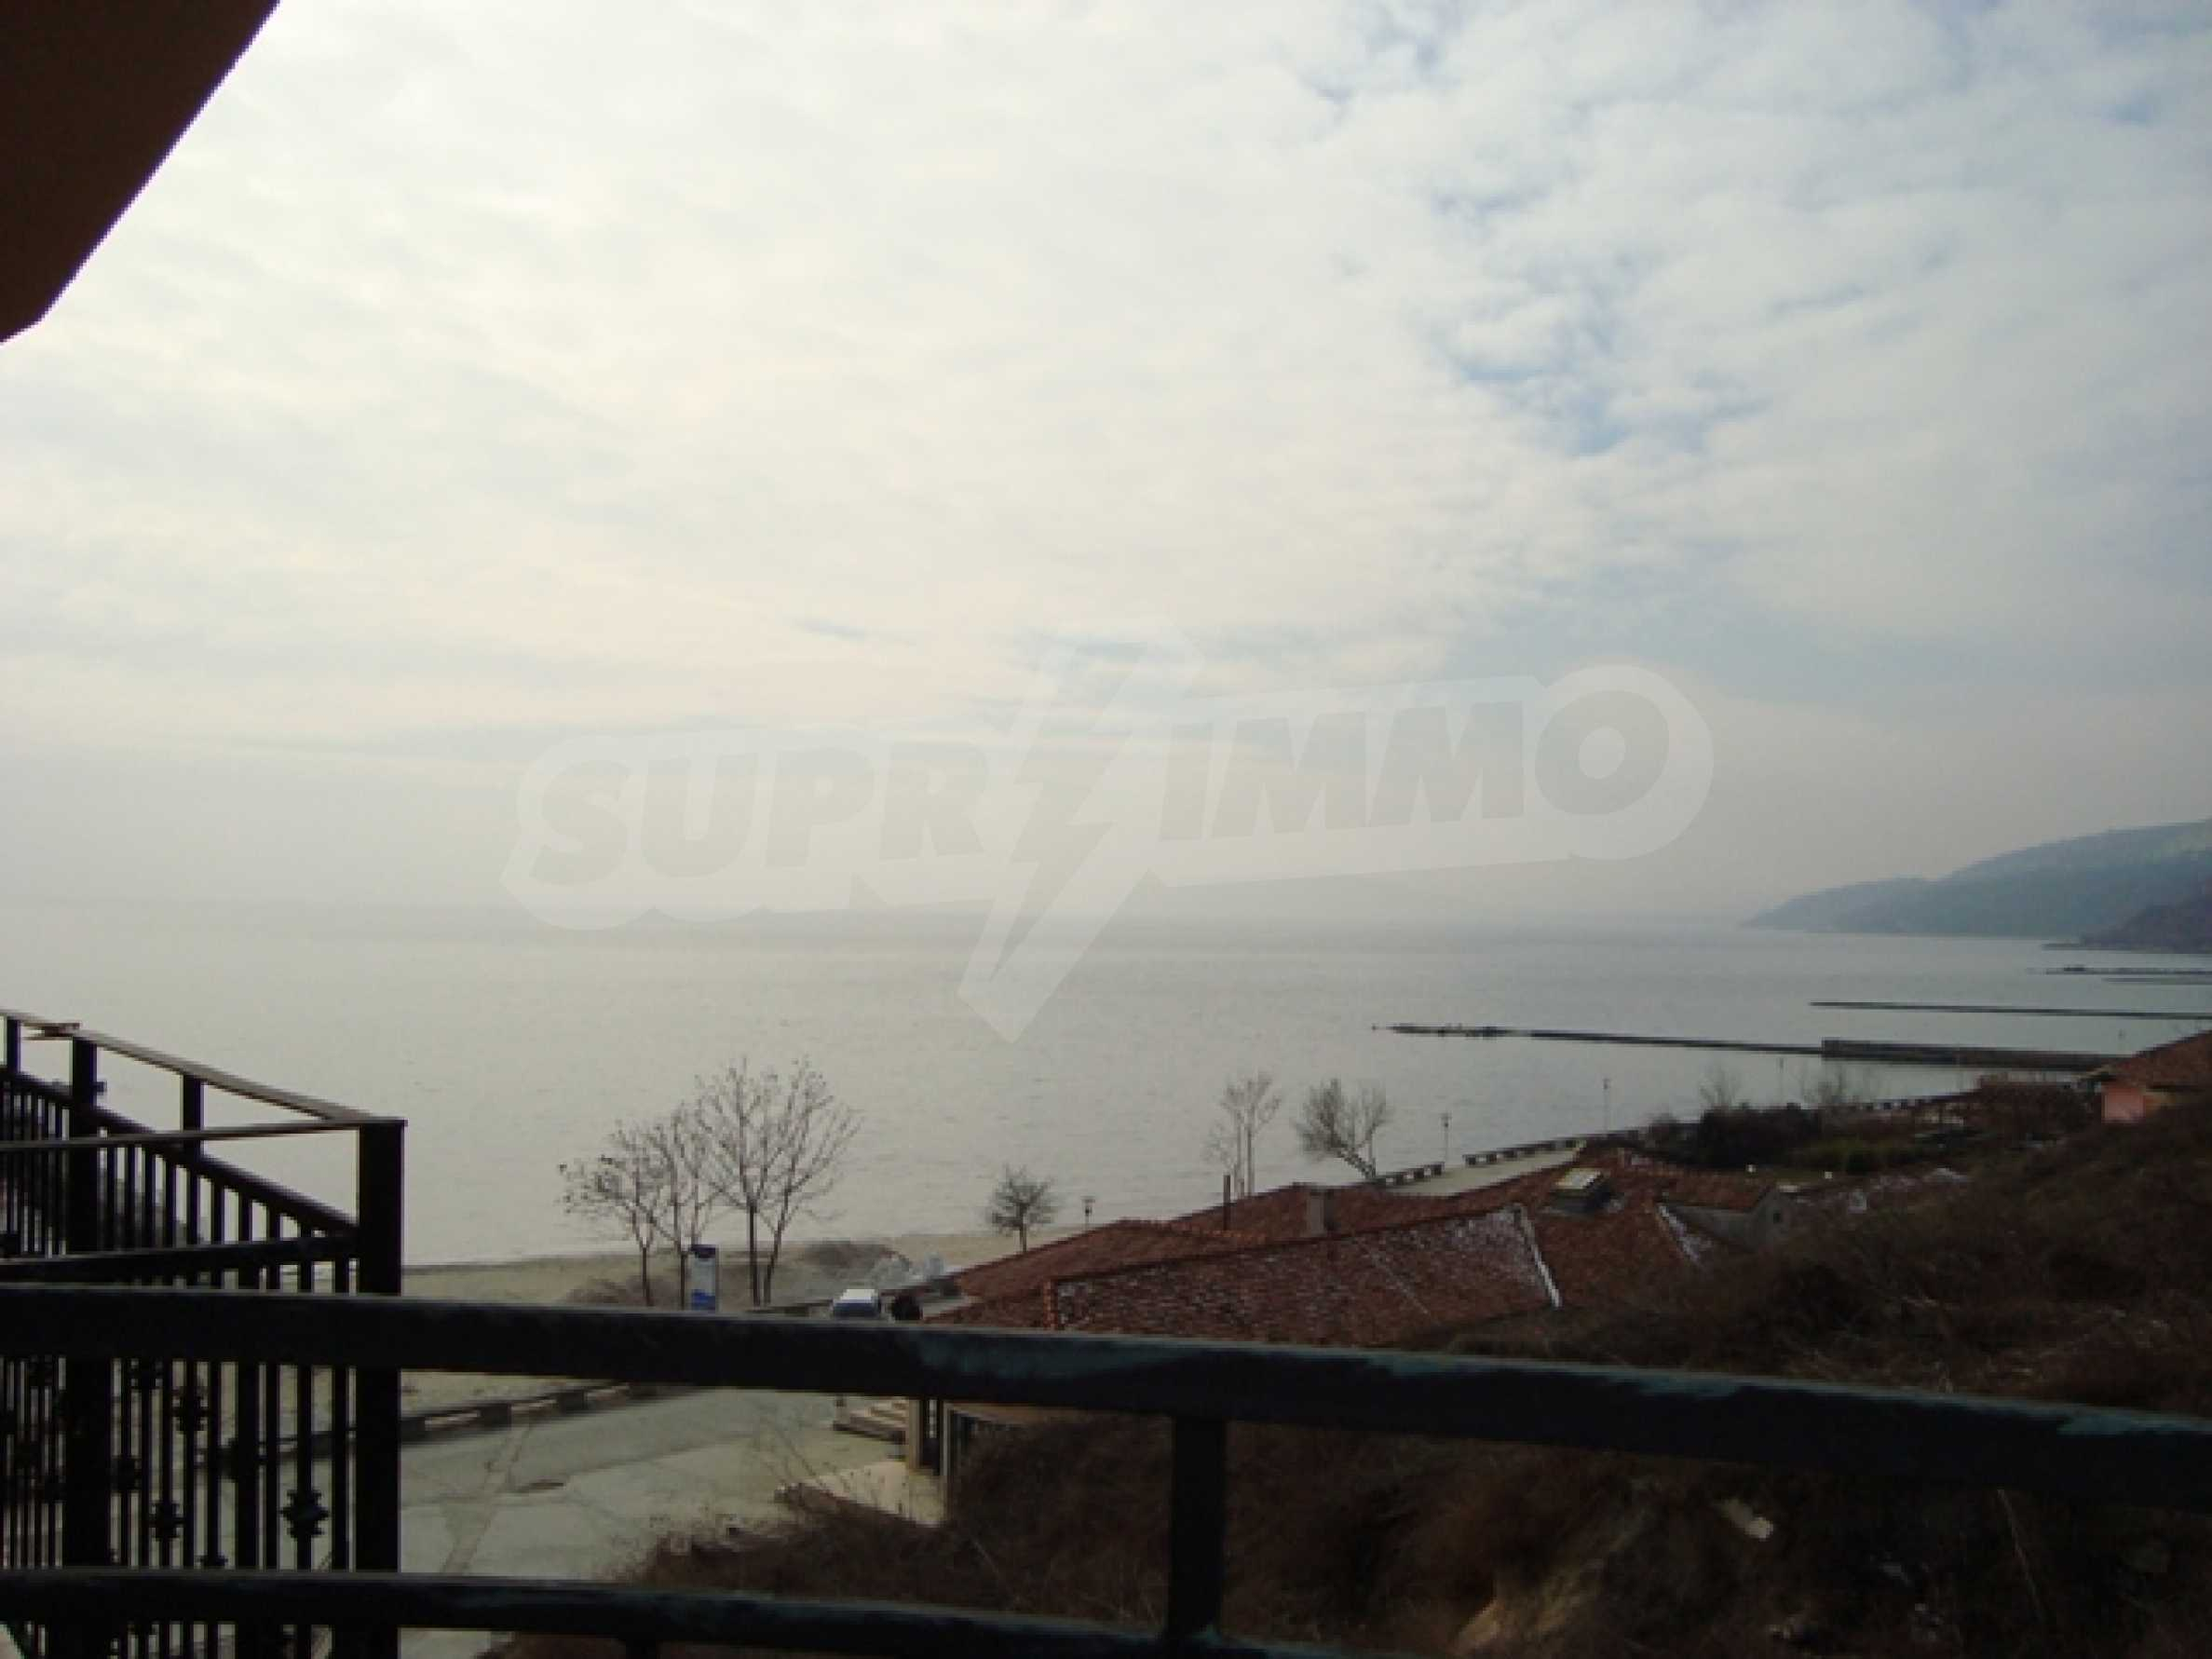 First line from the water in Balchik 22